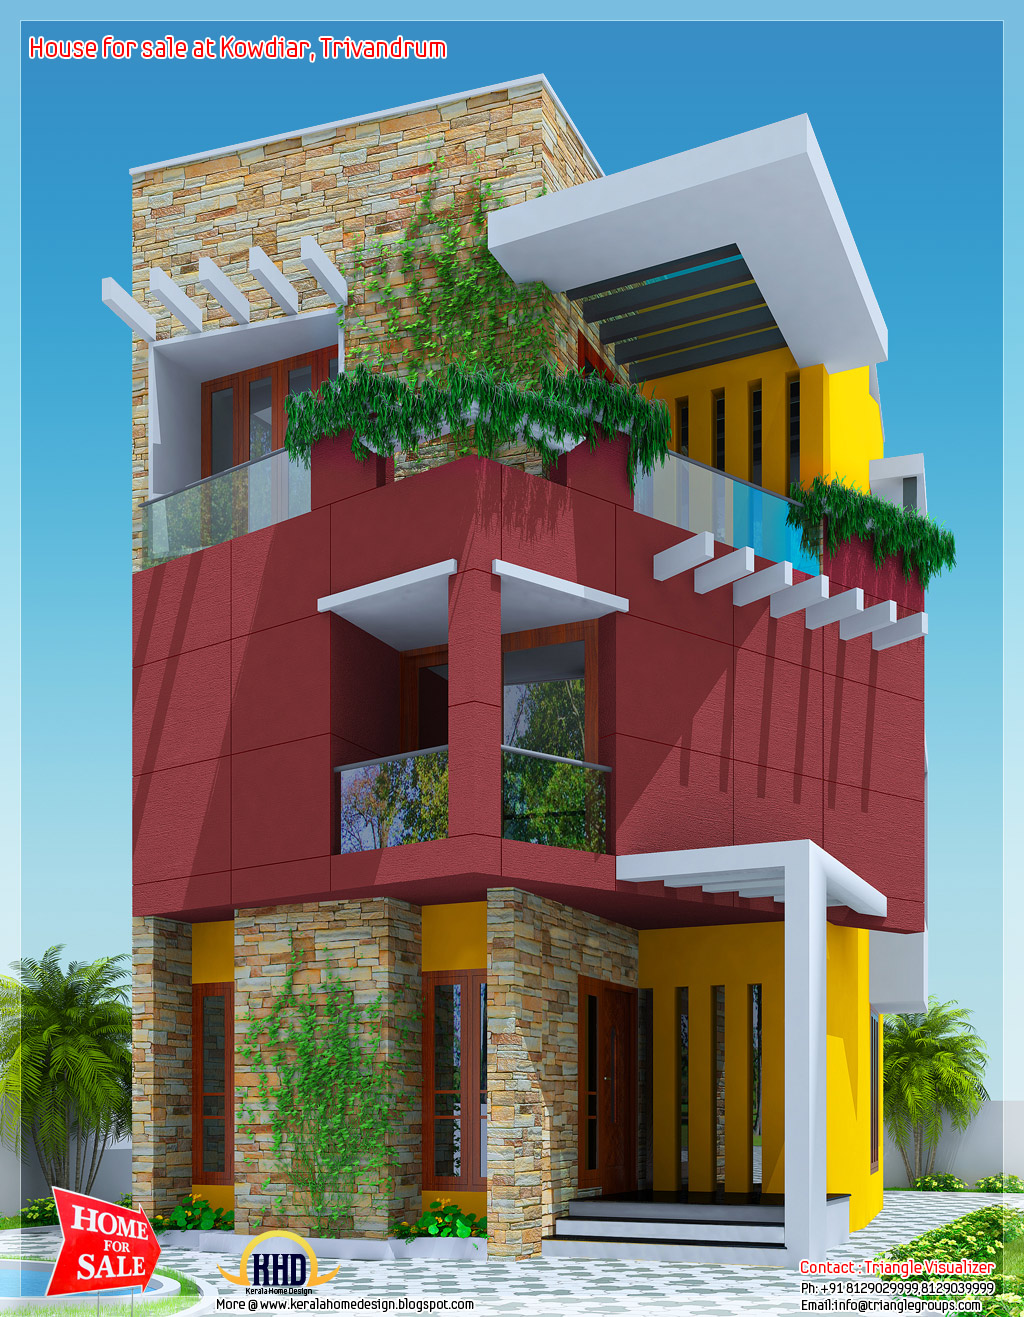 3 floor house for sale at kowdiar trivandrum home appliance Modern house plans for sale